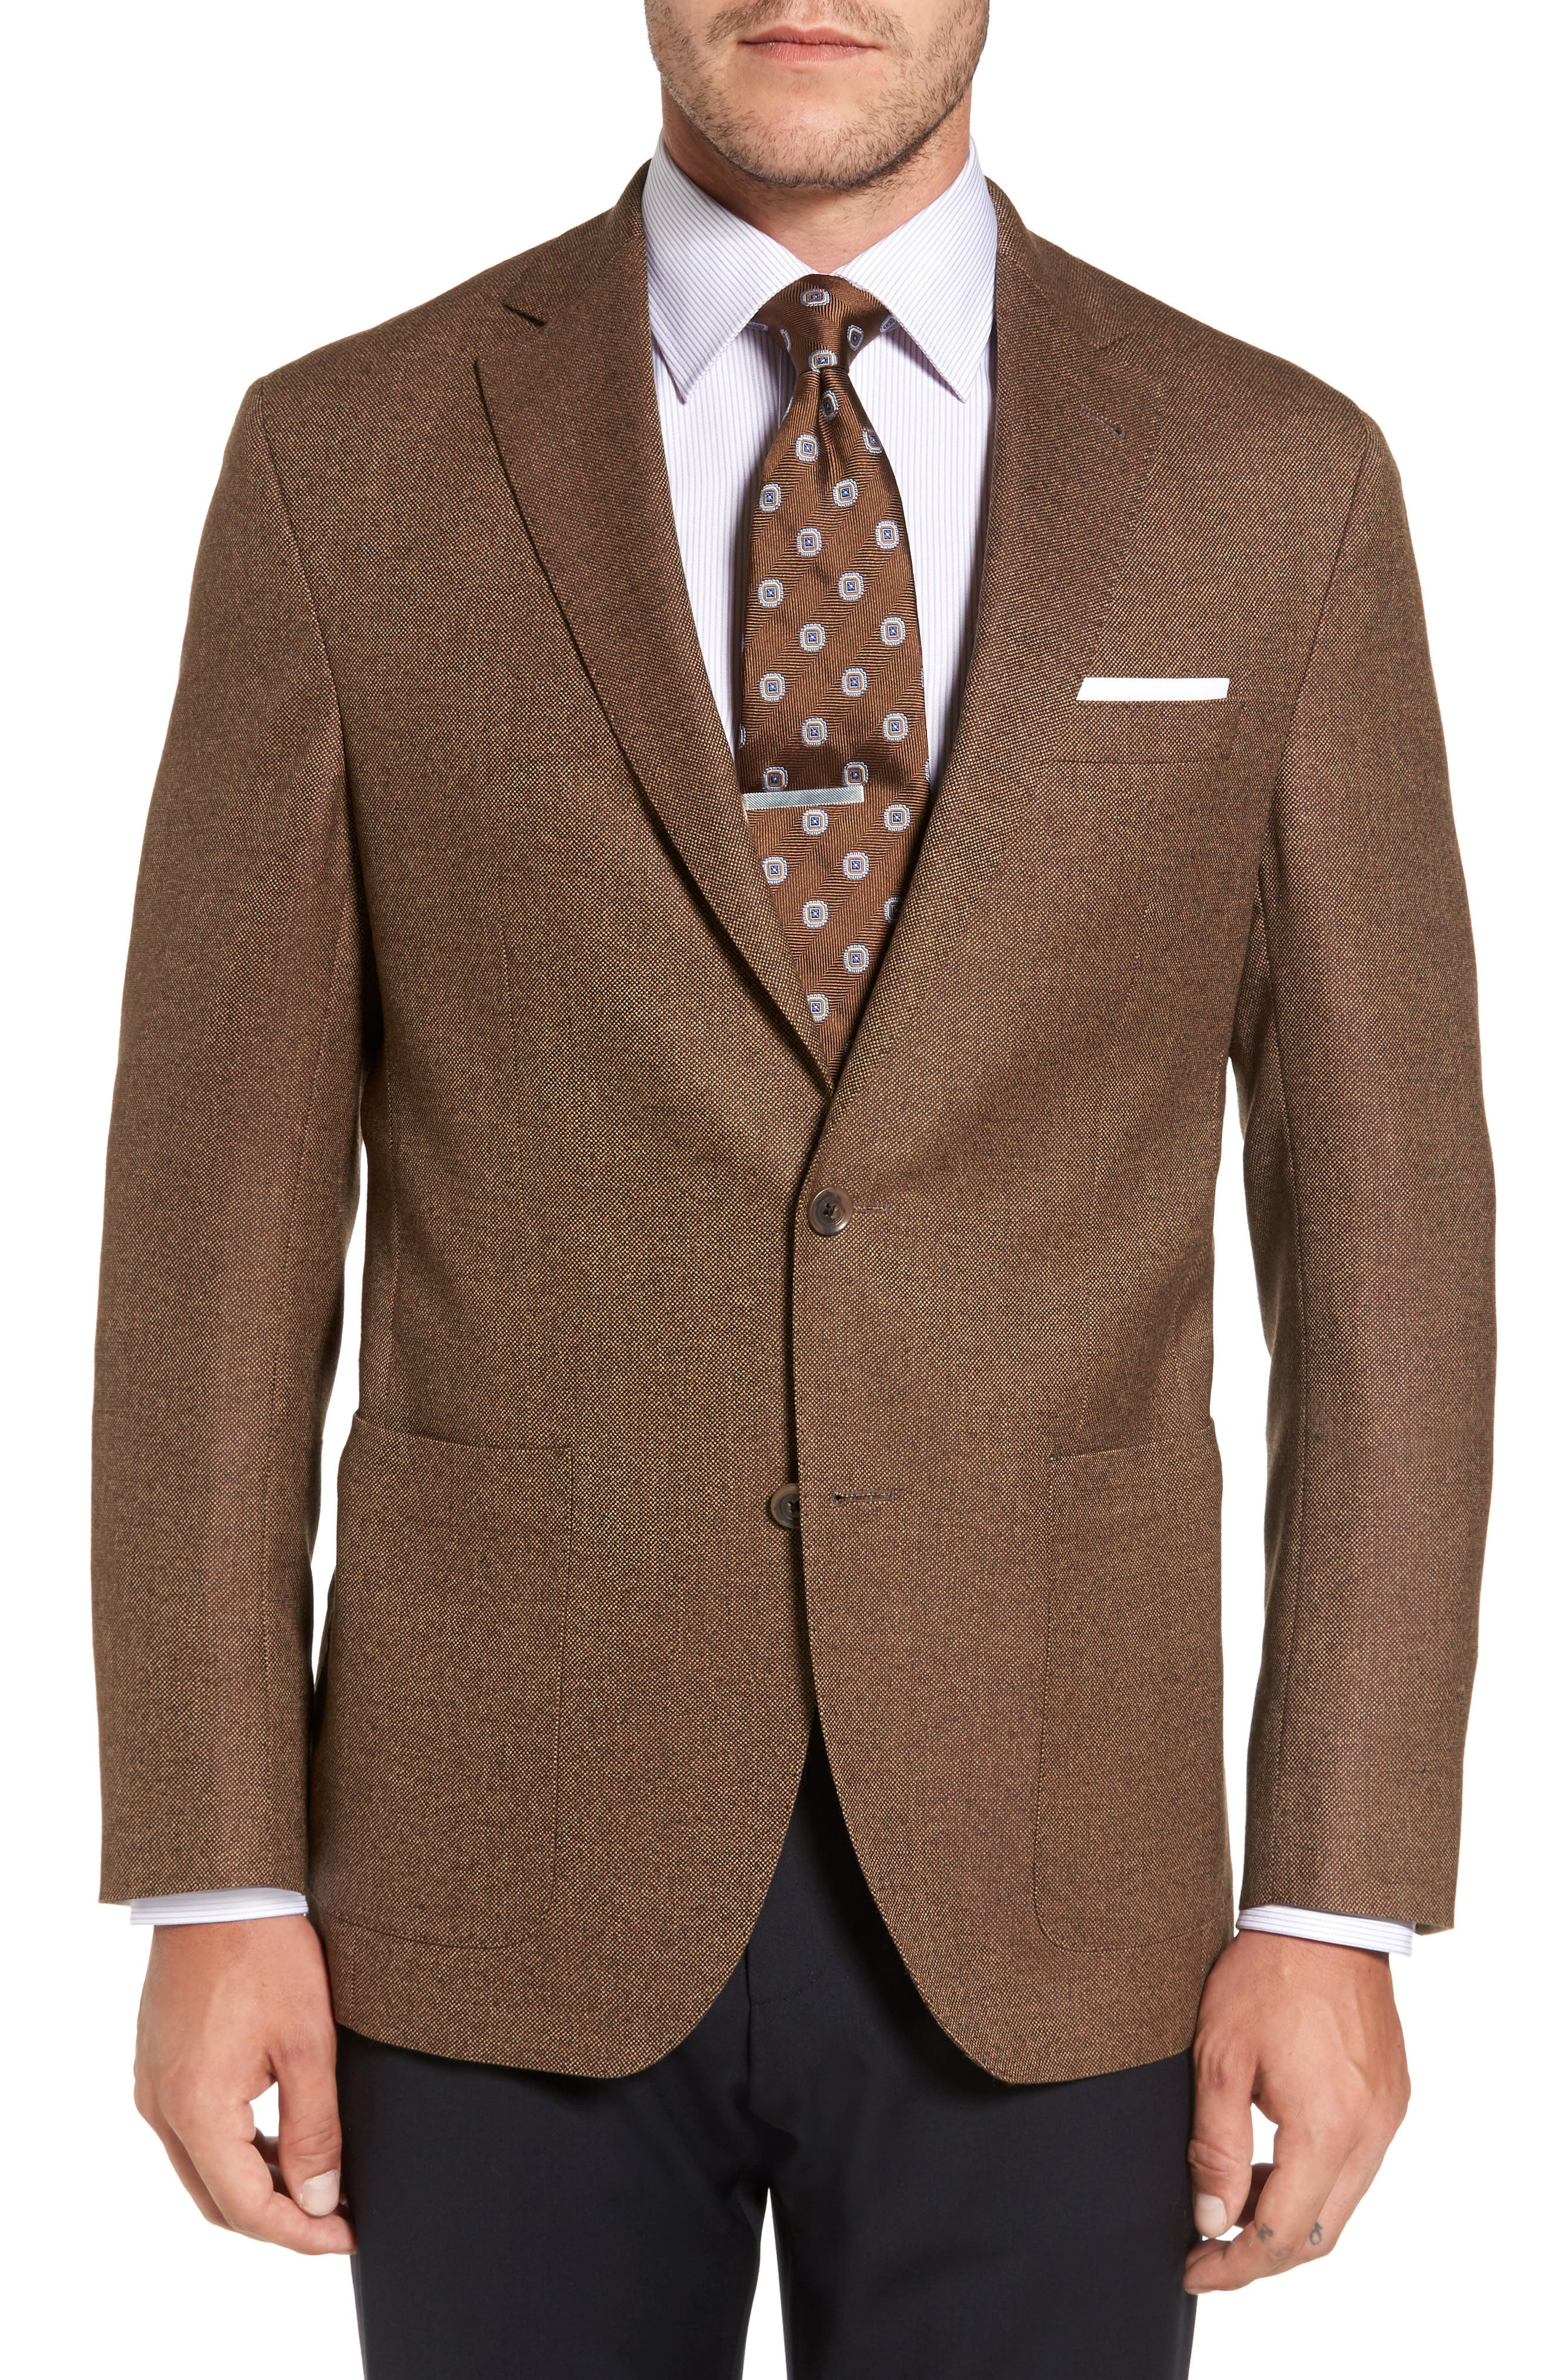 Aiden Classic Fit Wool Blazer,                             Main thumbnail 1, color,                             230